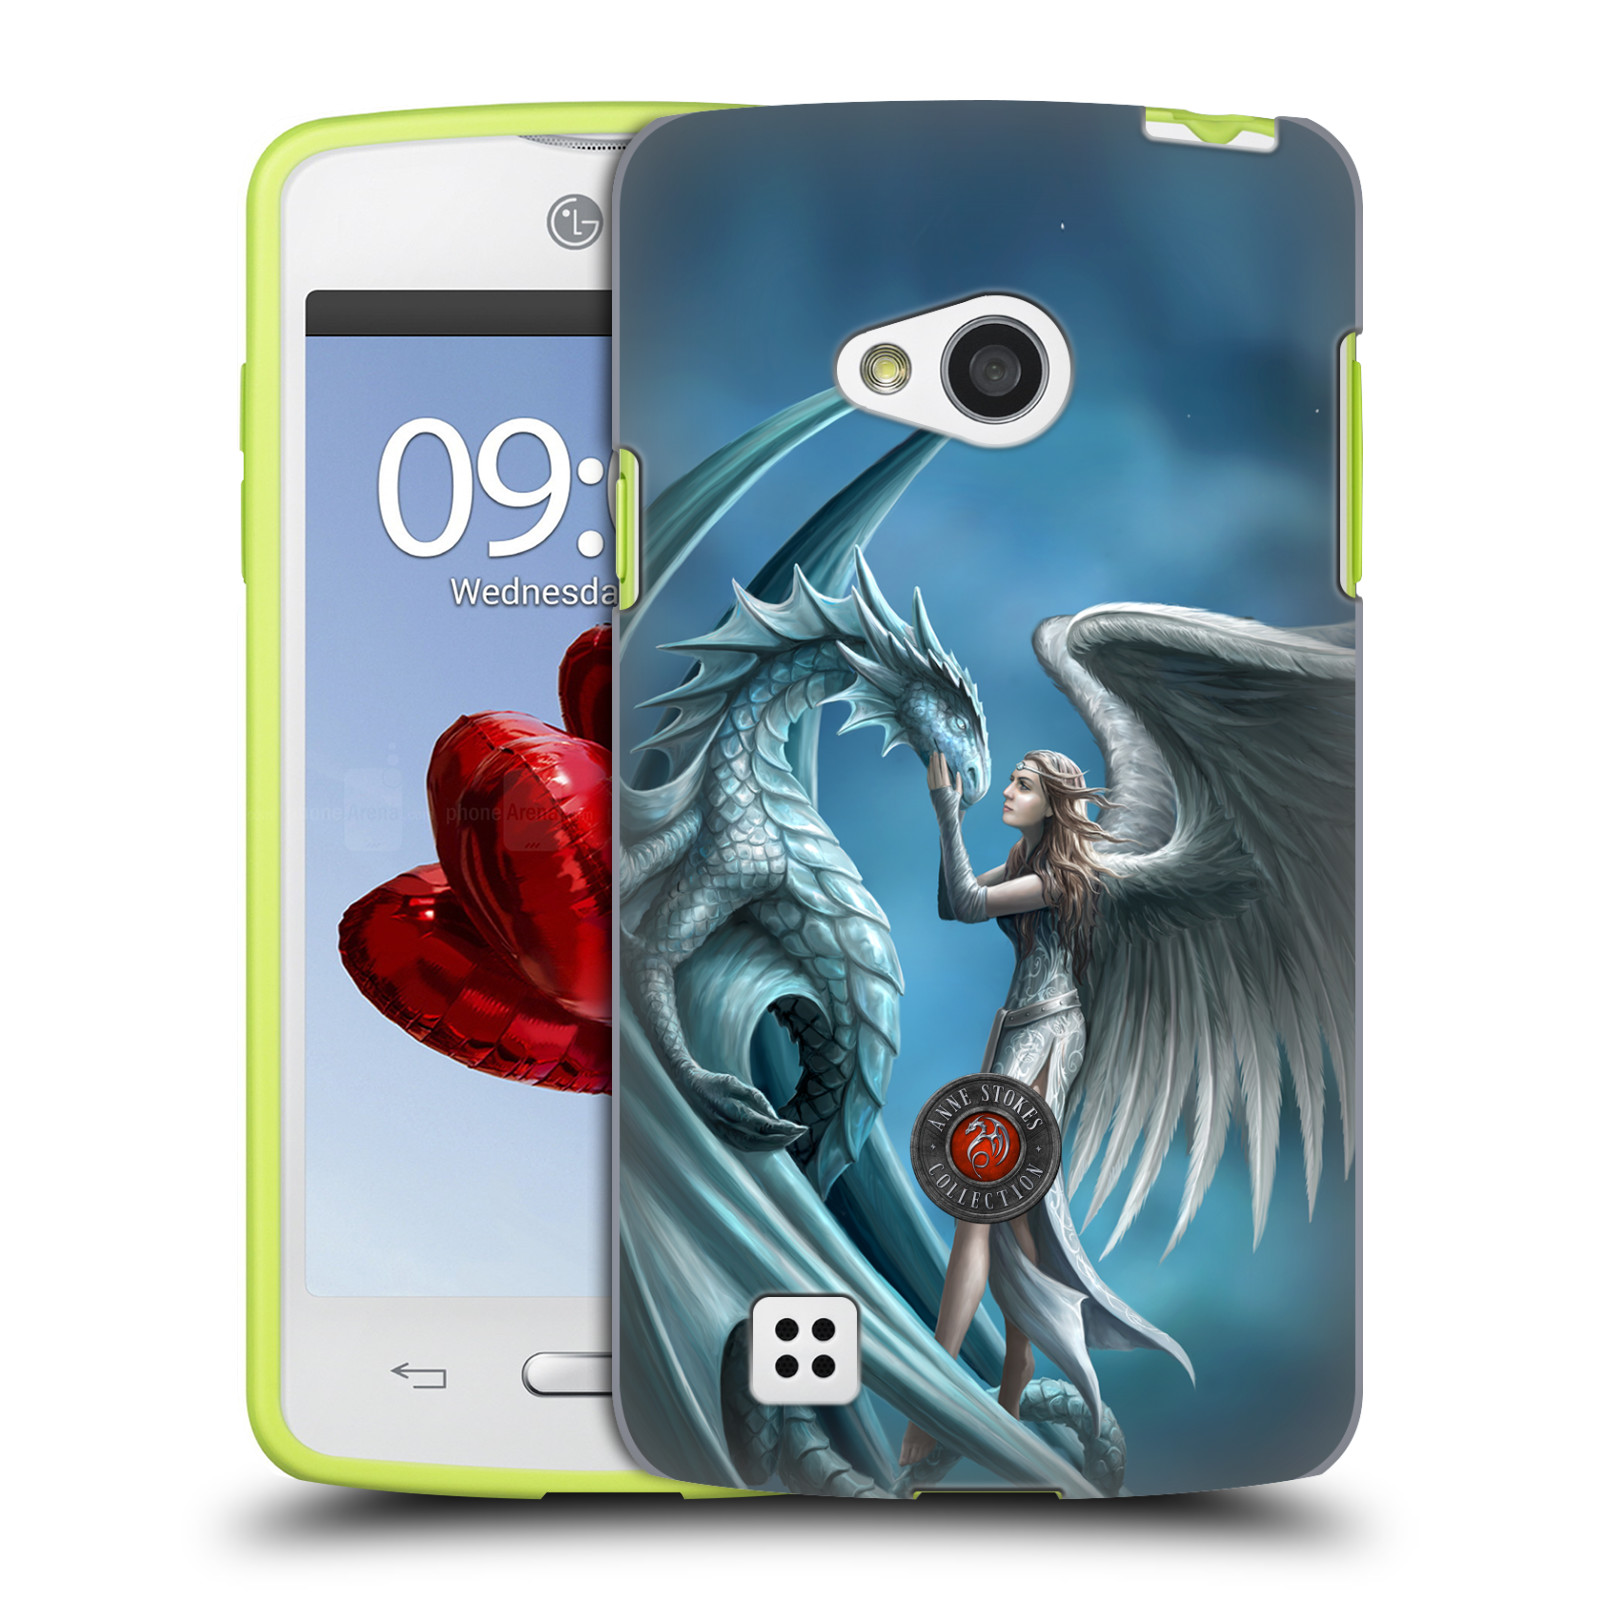 OFFICIAL ANNE STOKES DRAGON FRIENDSHIP HARD BACK CASE FOR LG PHONES 2